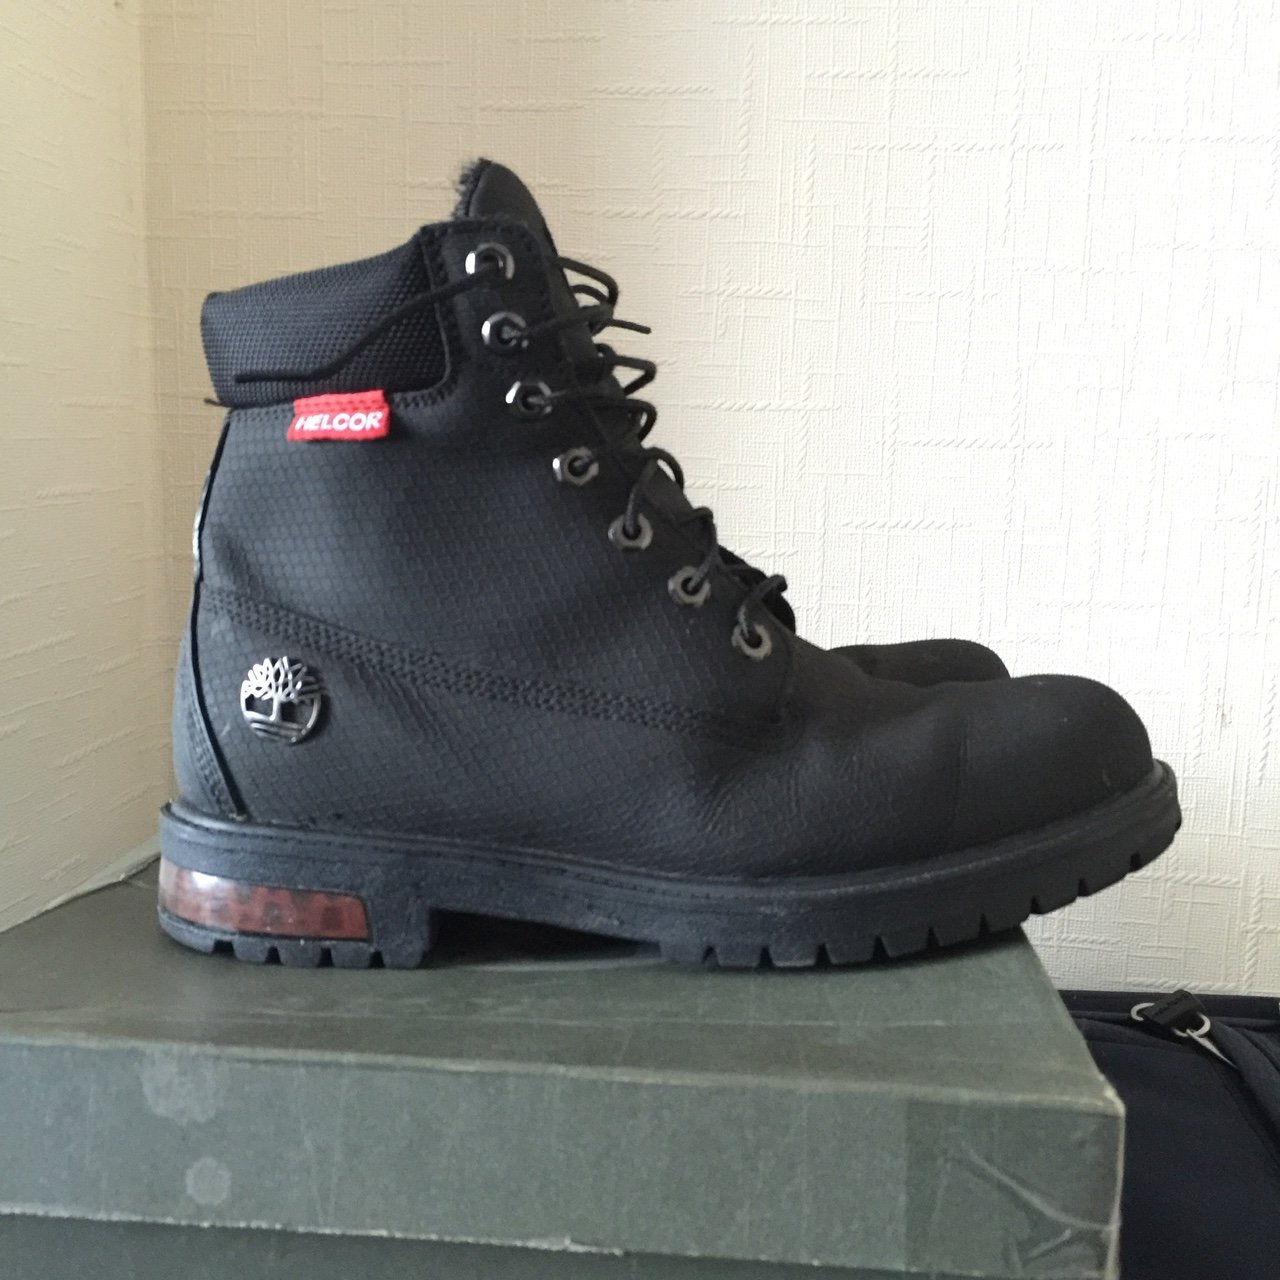 Black timberland Helcor AF scuff proof boot.